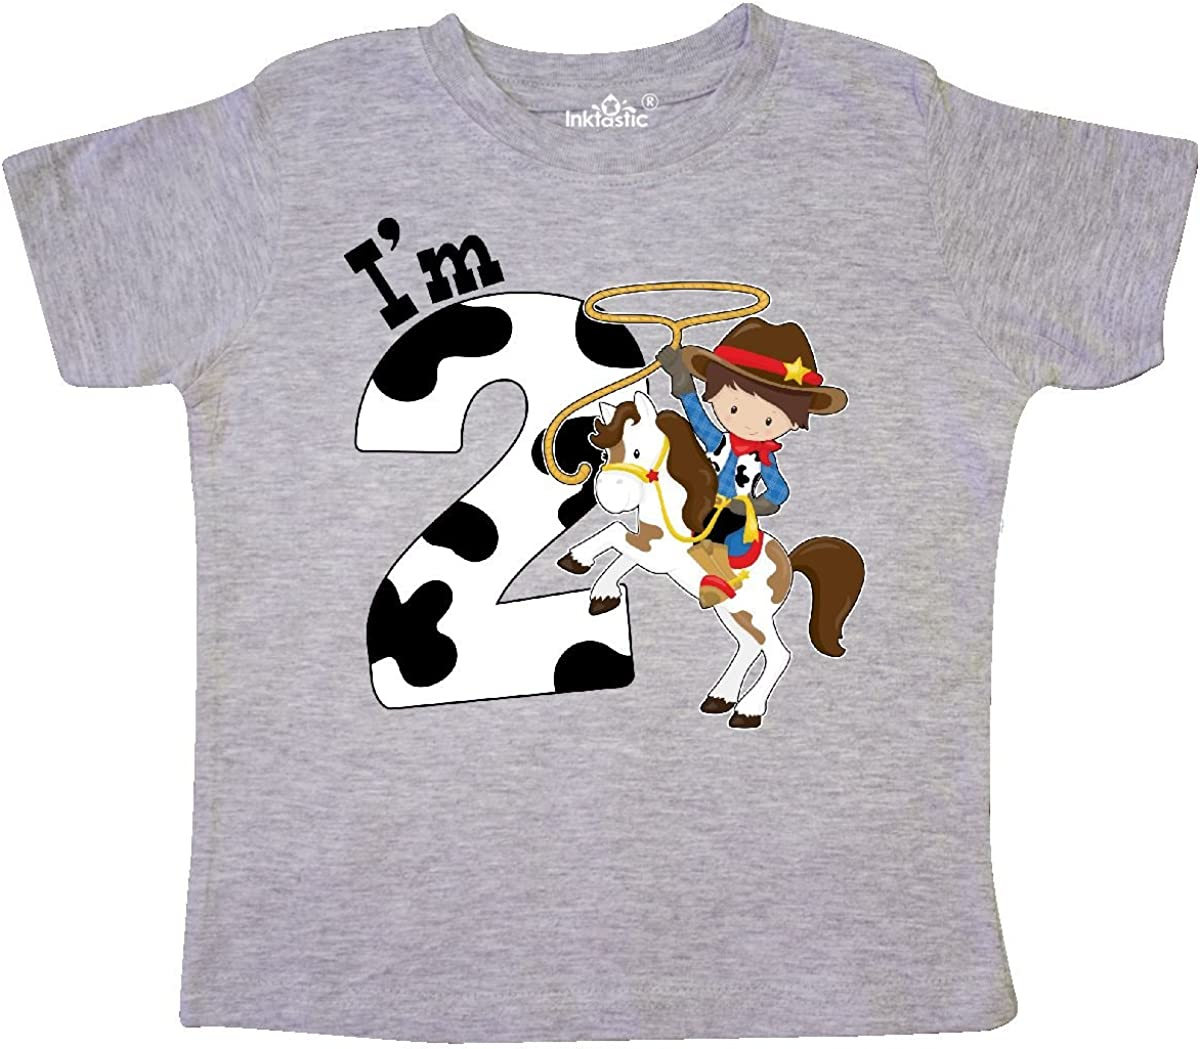 inktastic Cowgirl Little Sister Toddler T-Shirt